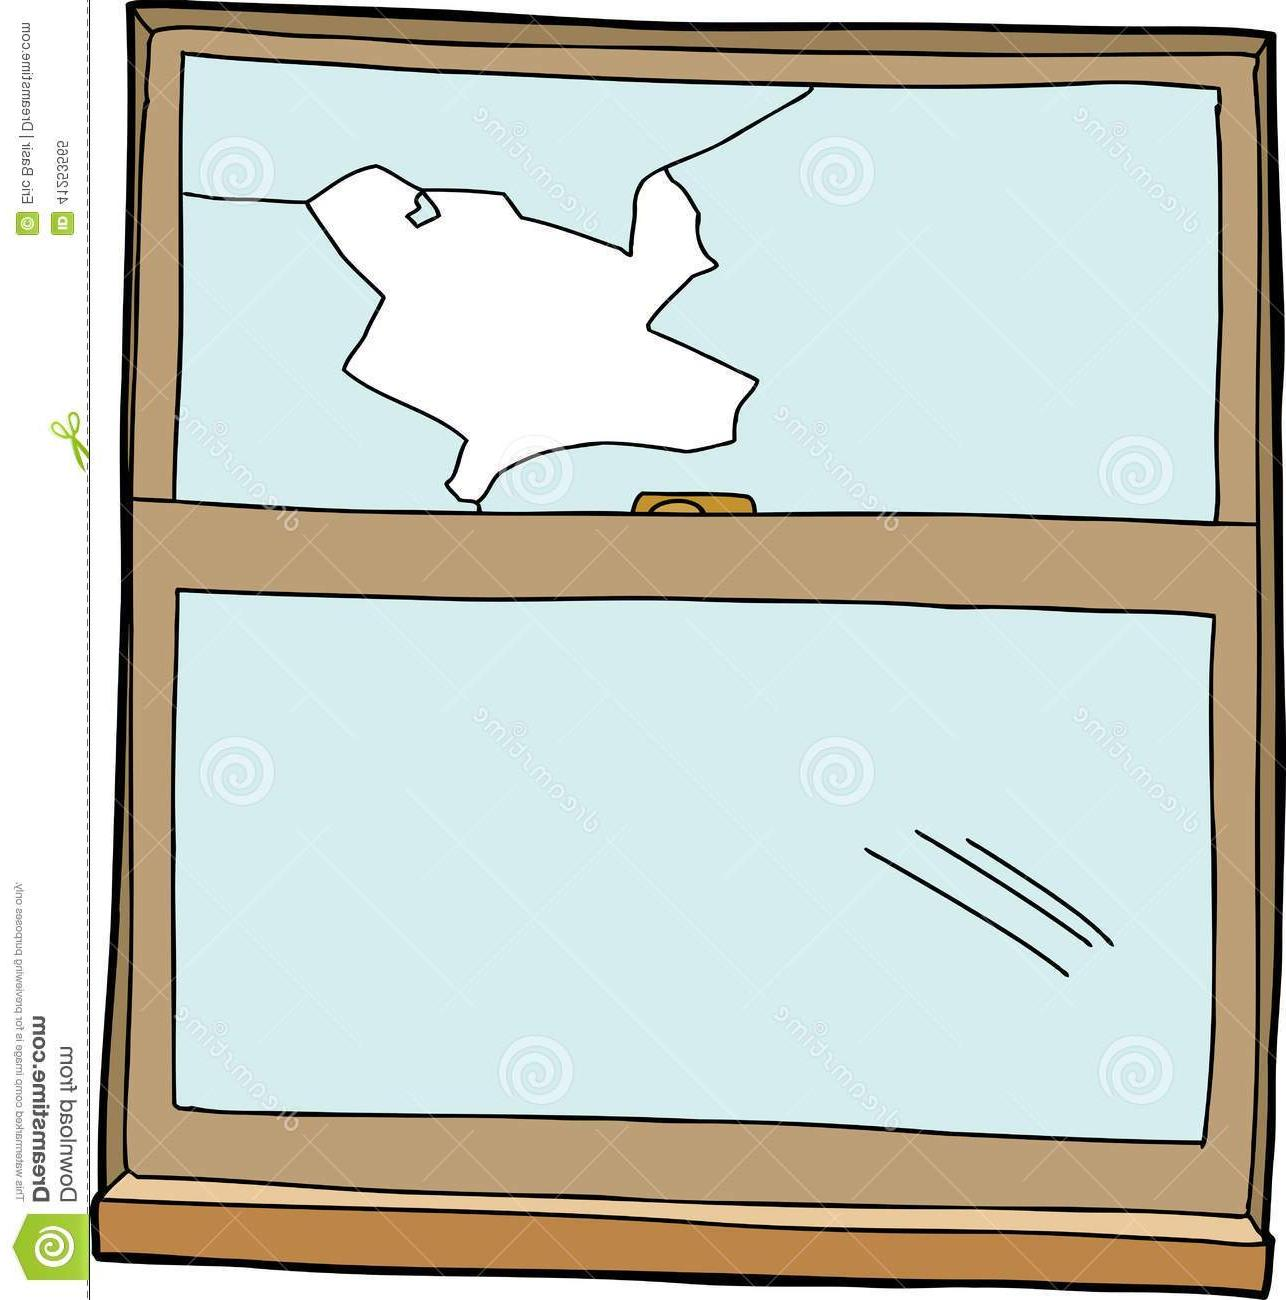 1286x1300 Collection Of Broken Window Clipart High Quality, Free